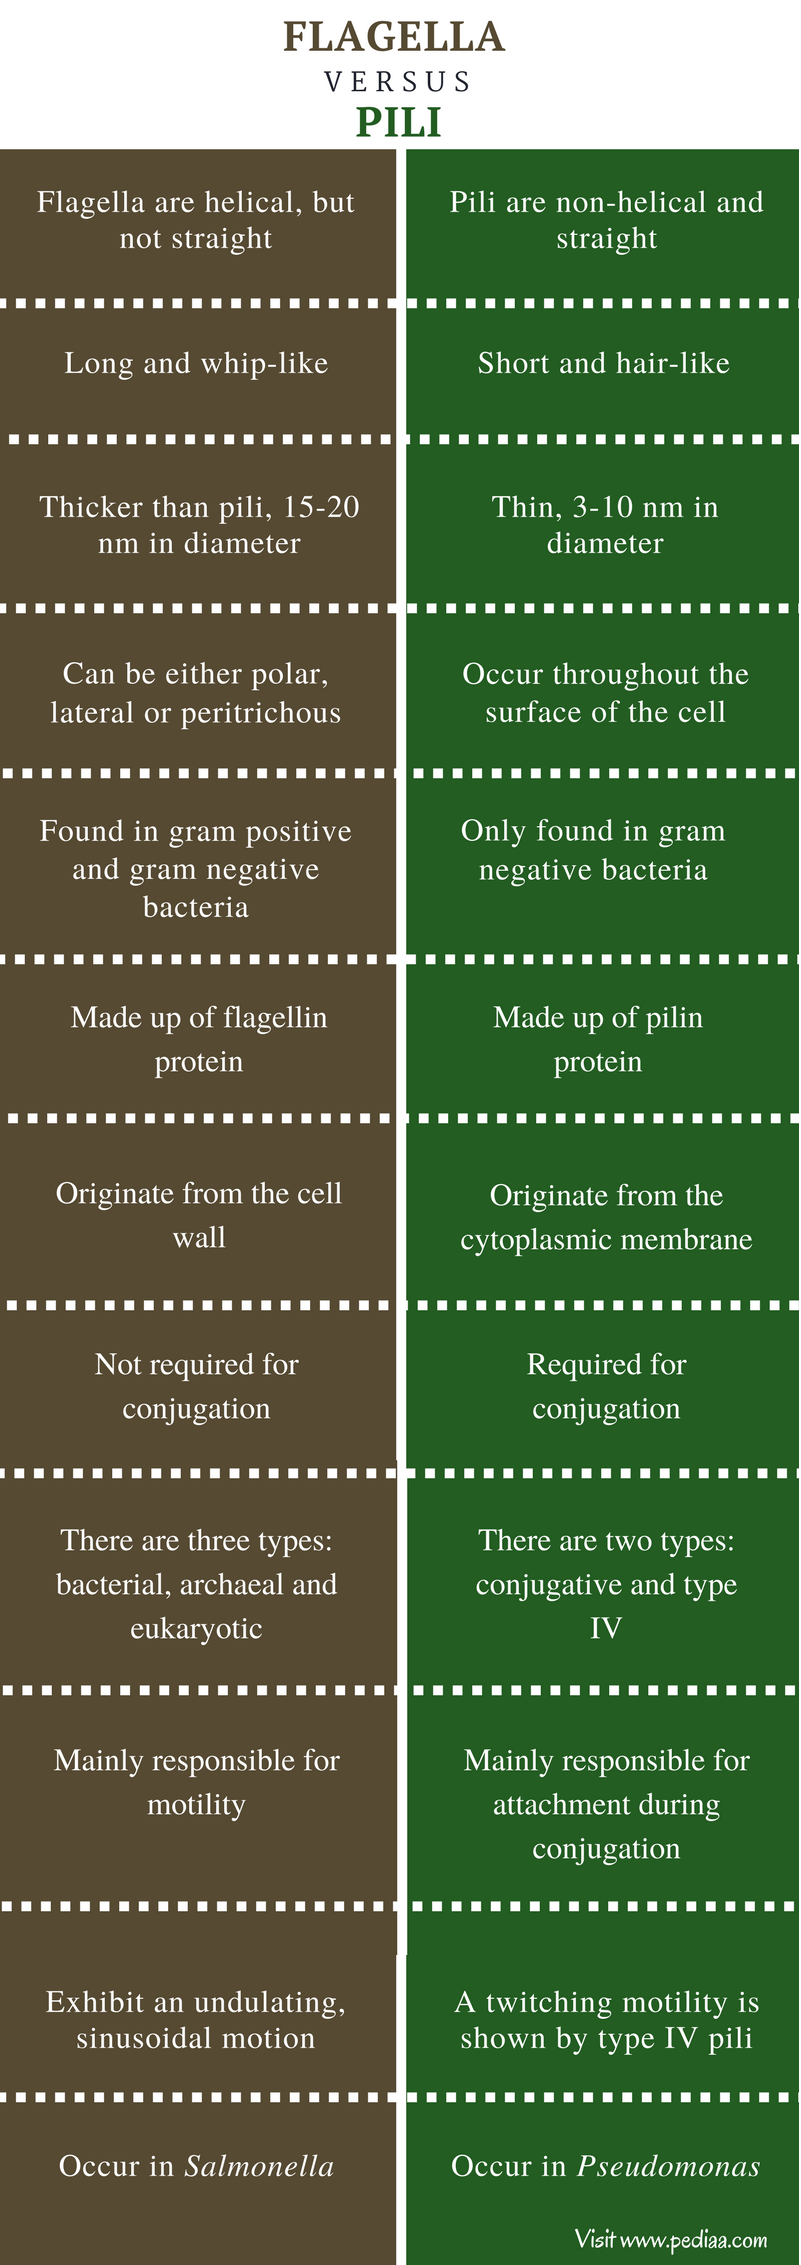 Difference Between Flagella and Pilli - Comparison Summary